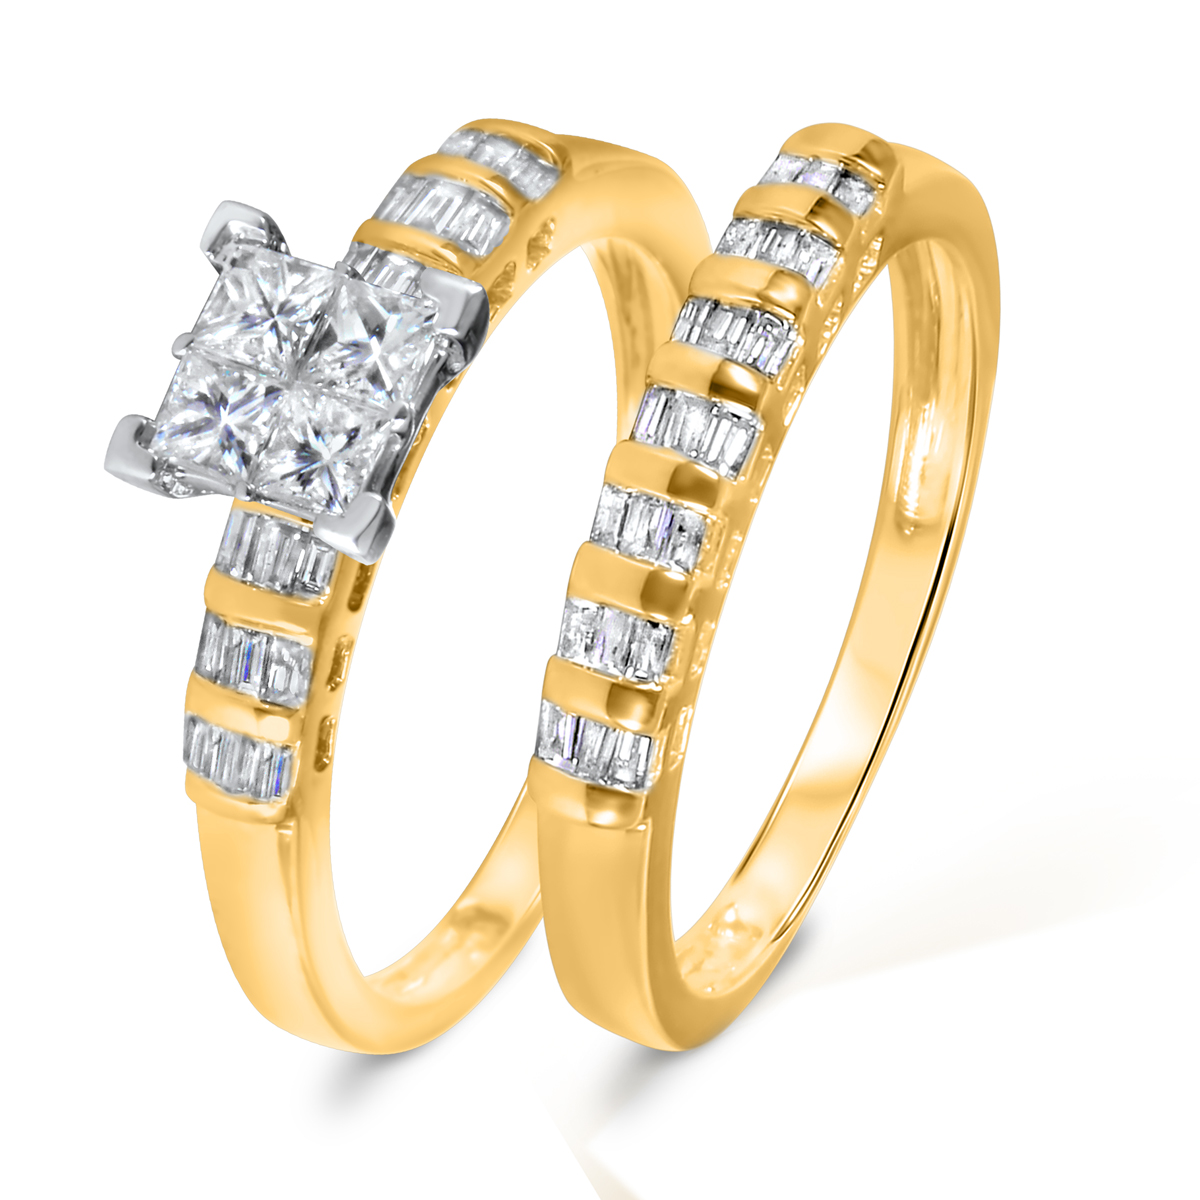 1 CT. T.W. Diamond Women's Bridal Wedding Ring Set 10K Yellow Gold